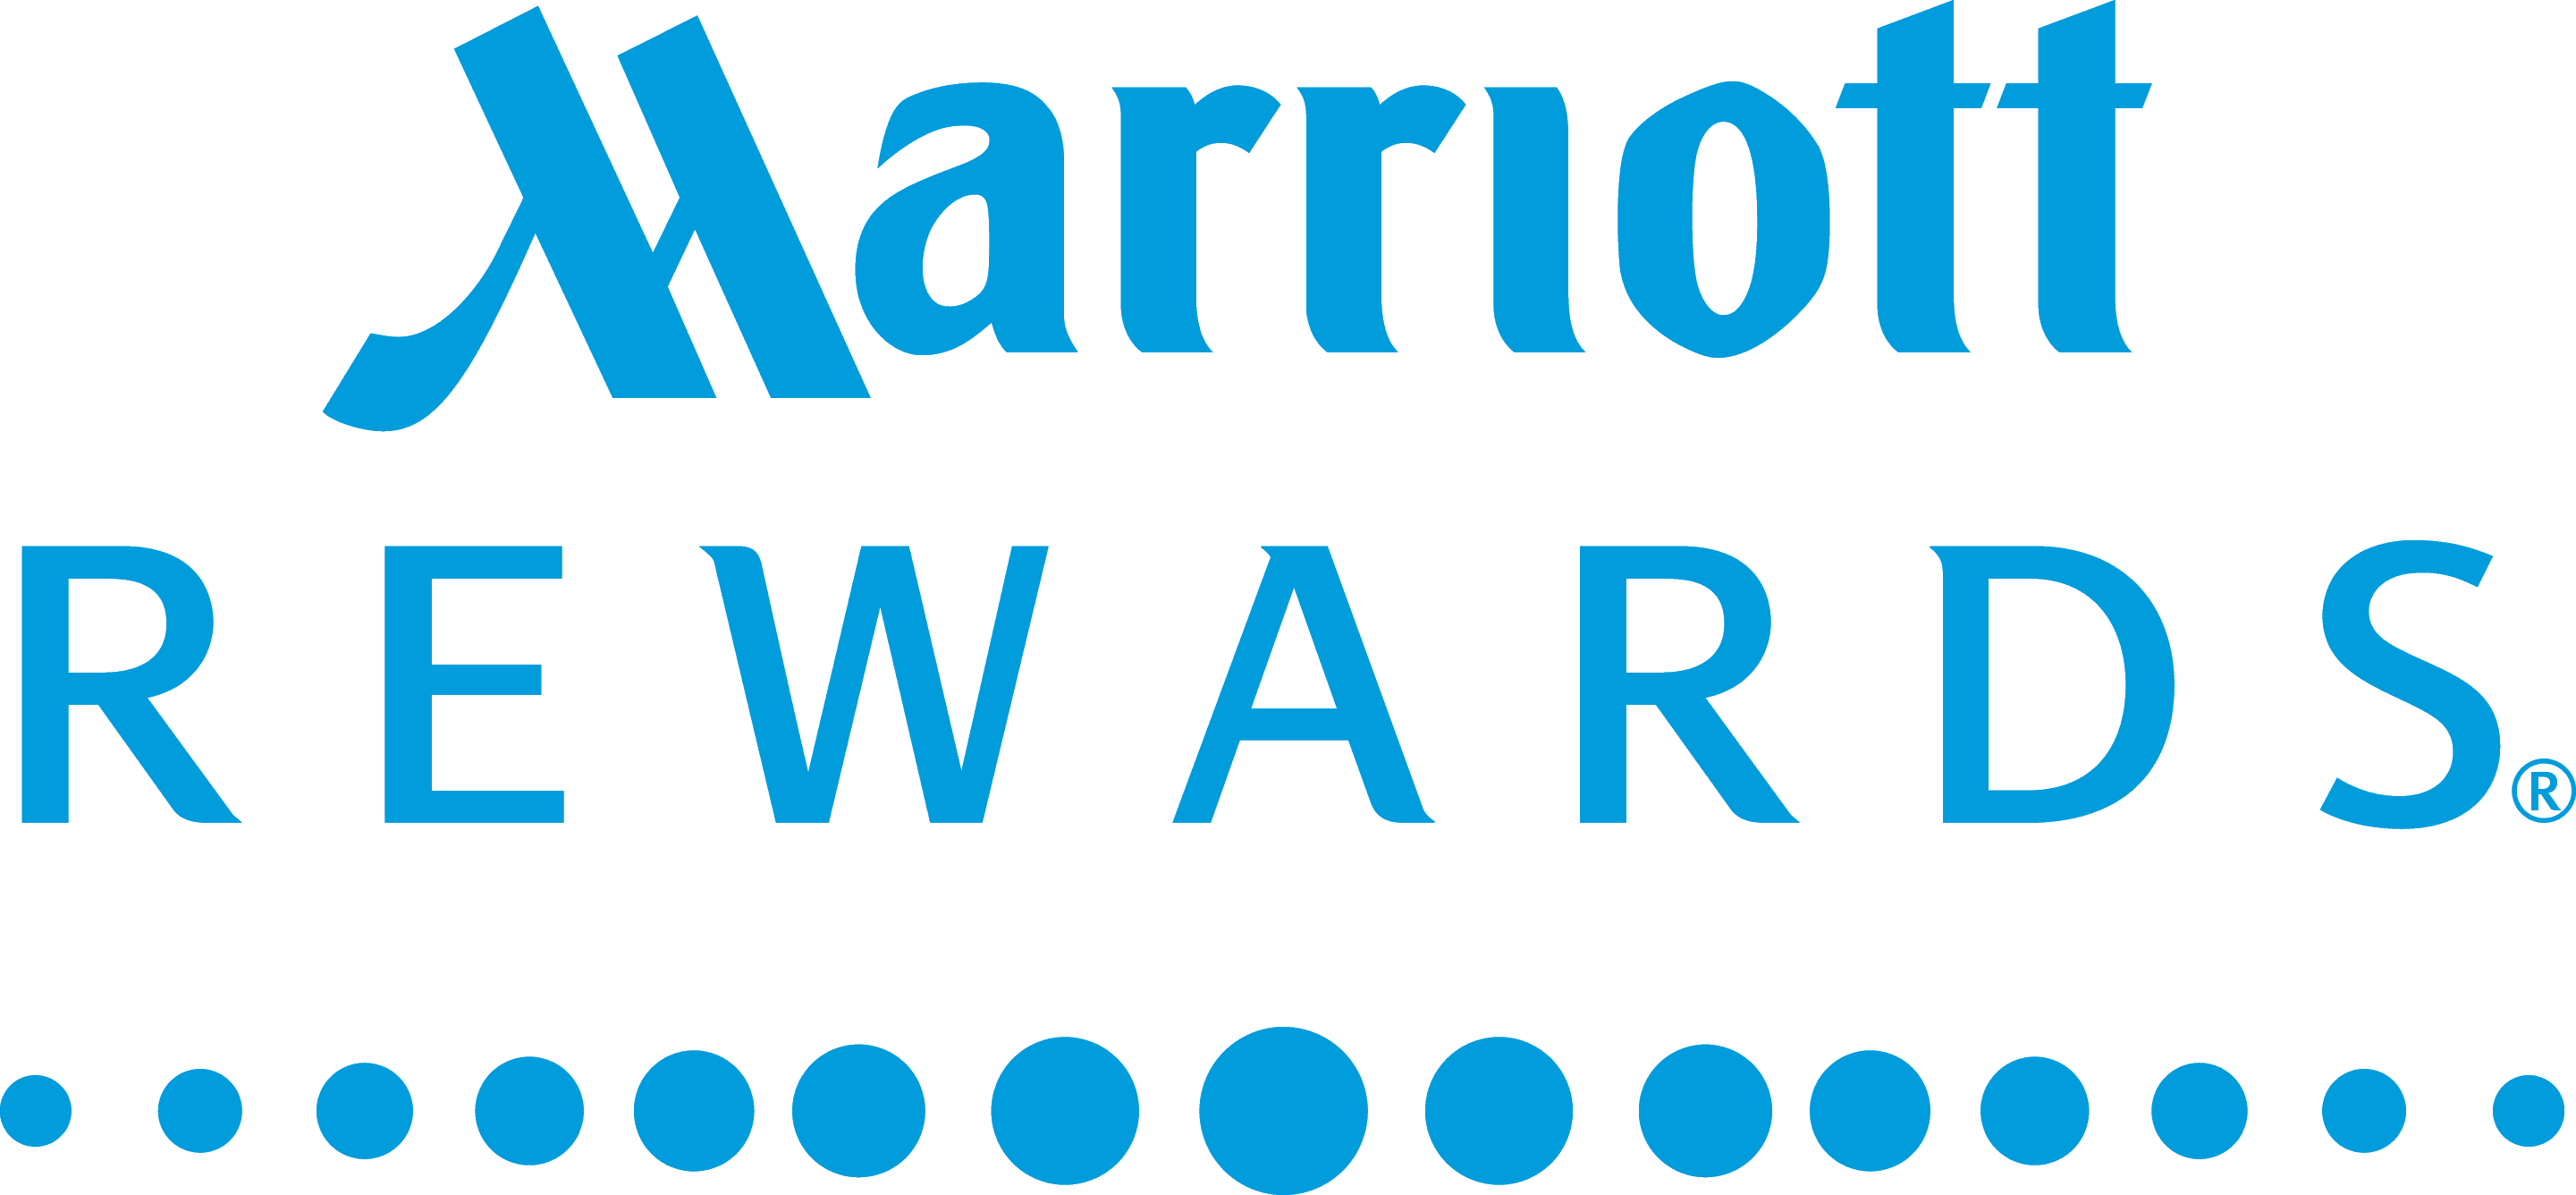 Marriot rewards logo